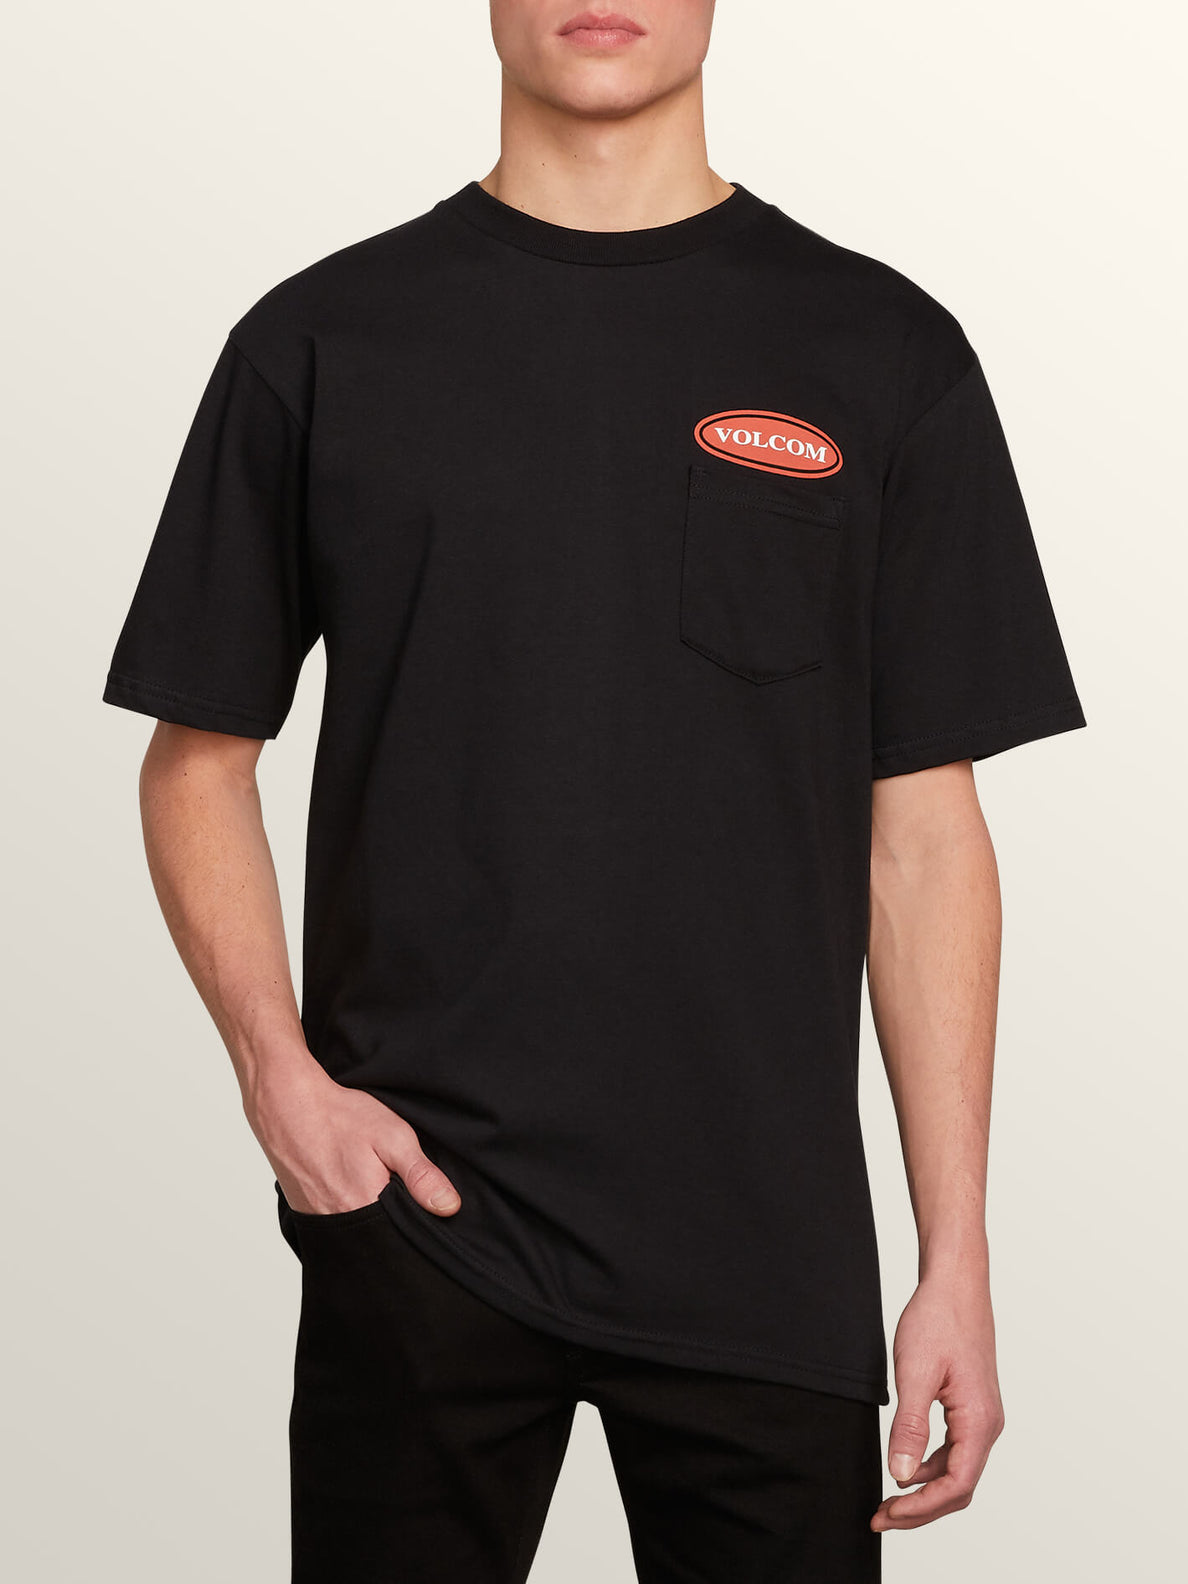 Stonecore 94 Short Sleeve Pocket Tee In Black, Front View